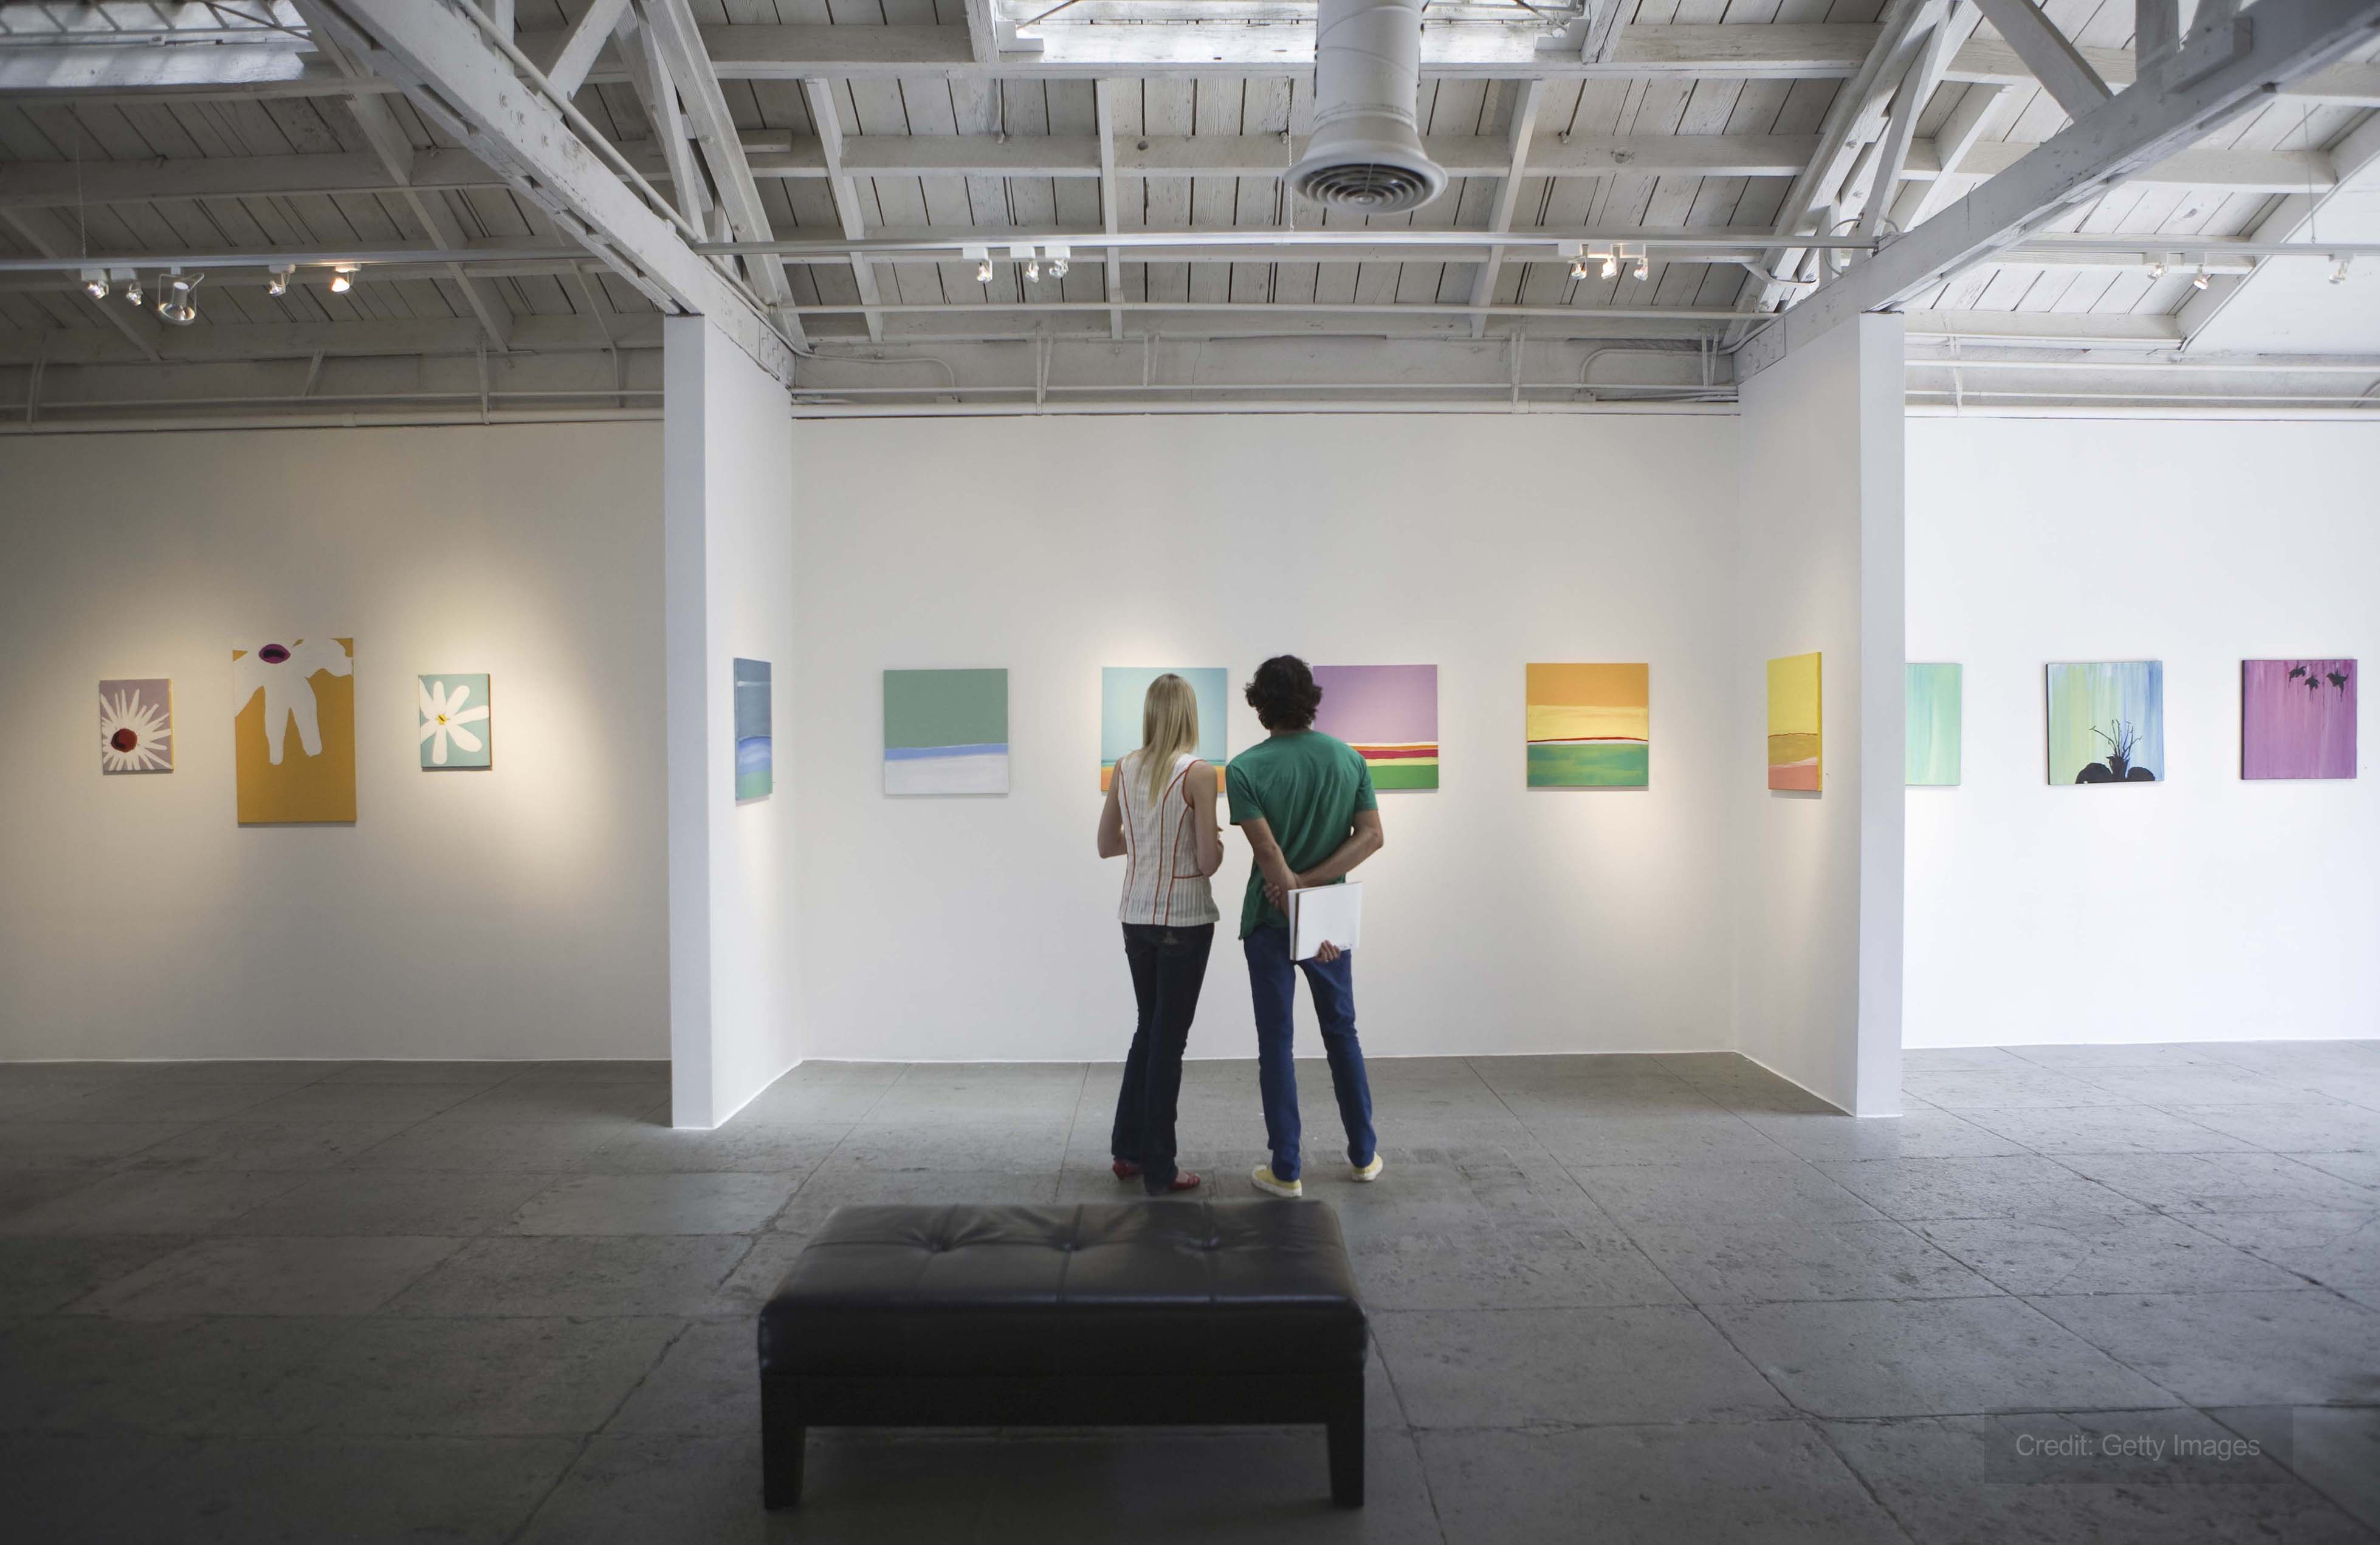 Art gallery in Manchester requires climate control